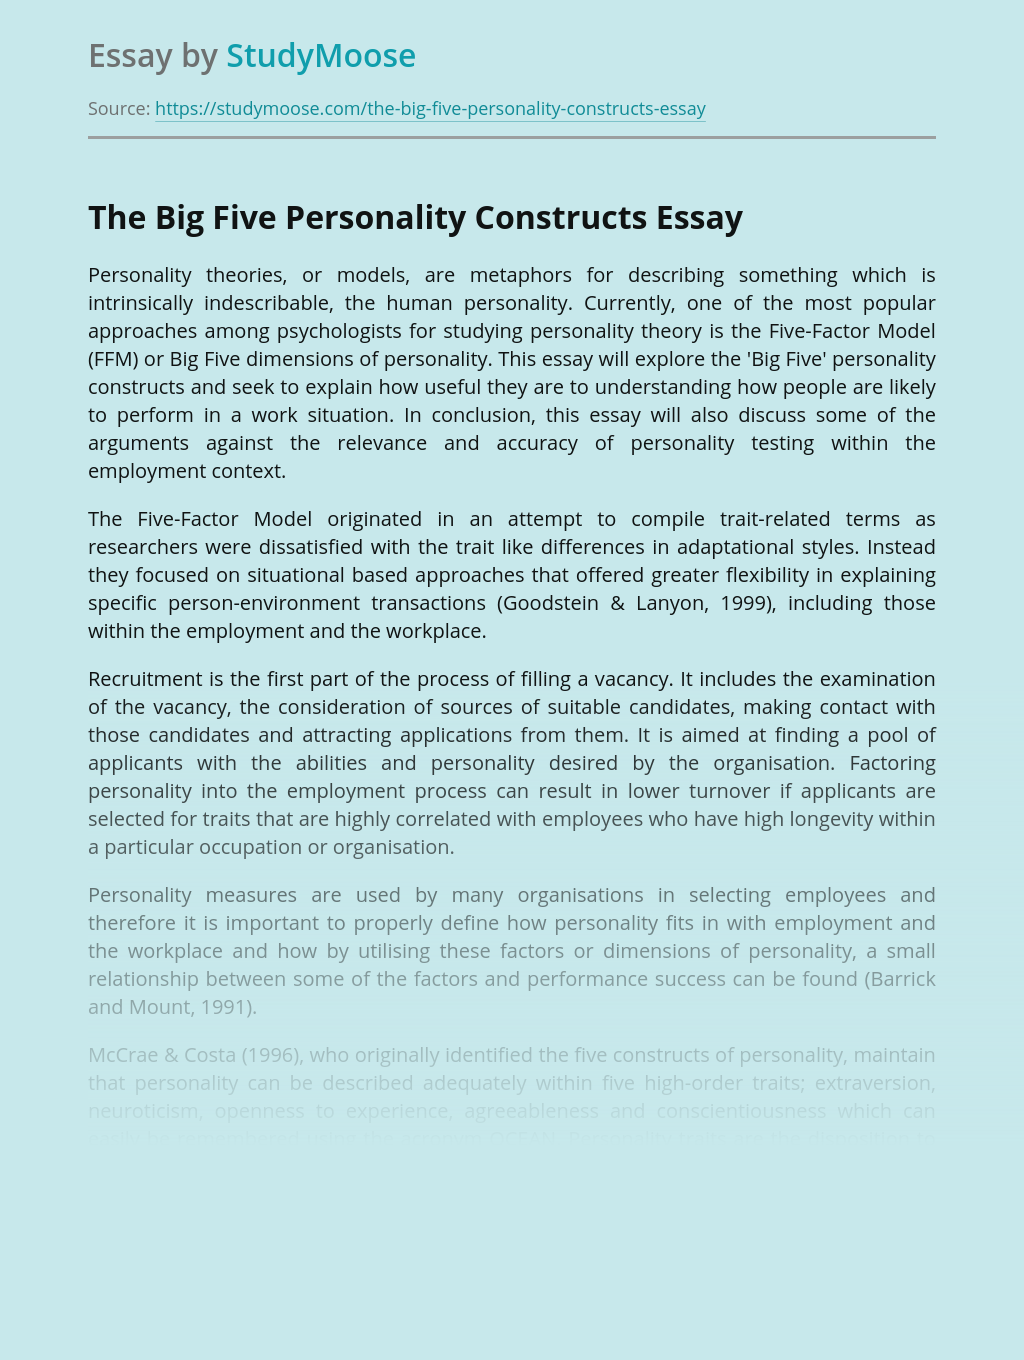 The Big Five Personality Constructs